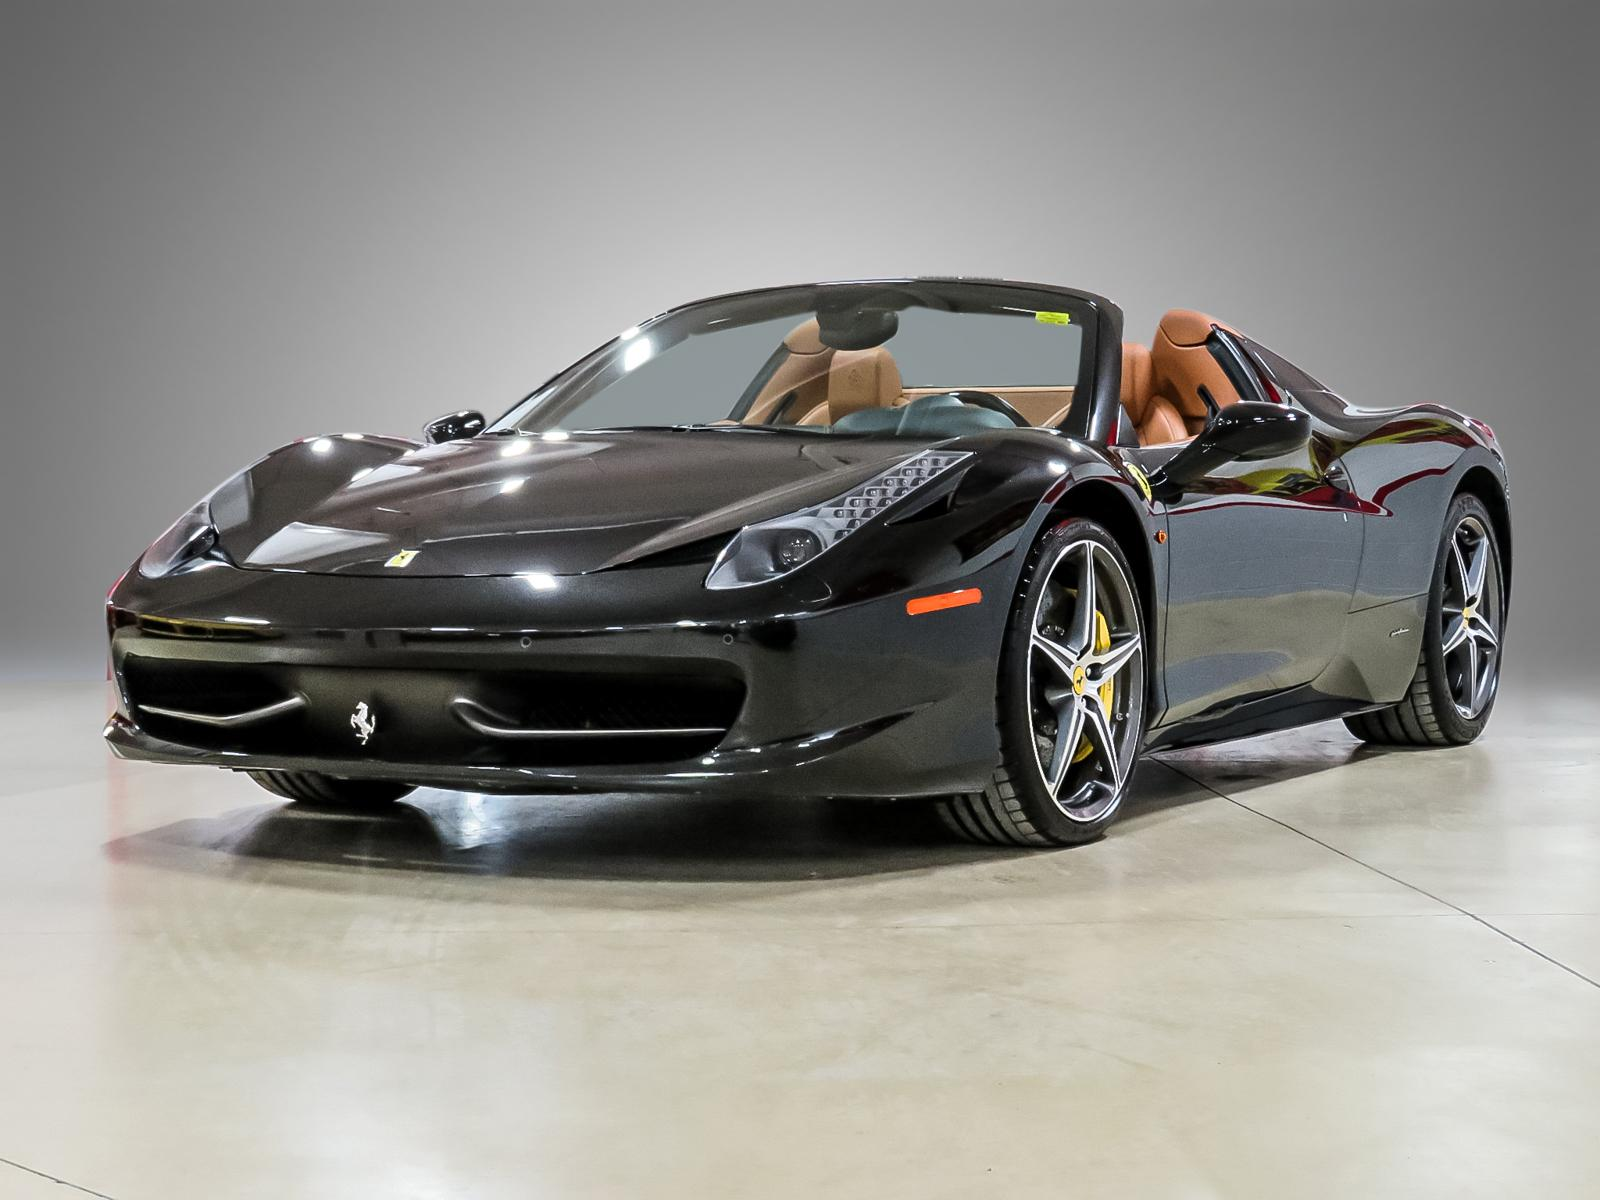 modena epsom used ferrari autofficina car sale infinity surrey in for